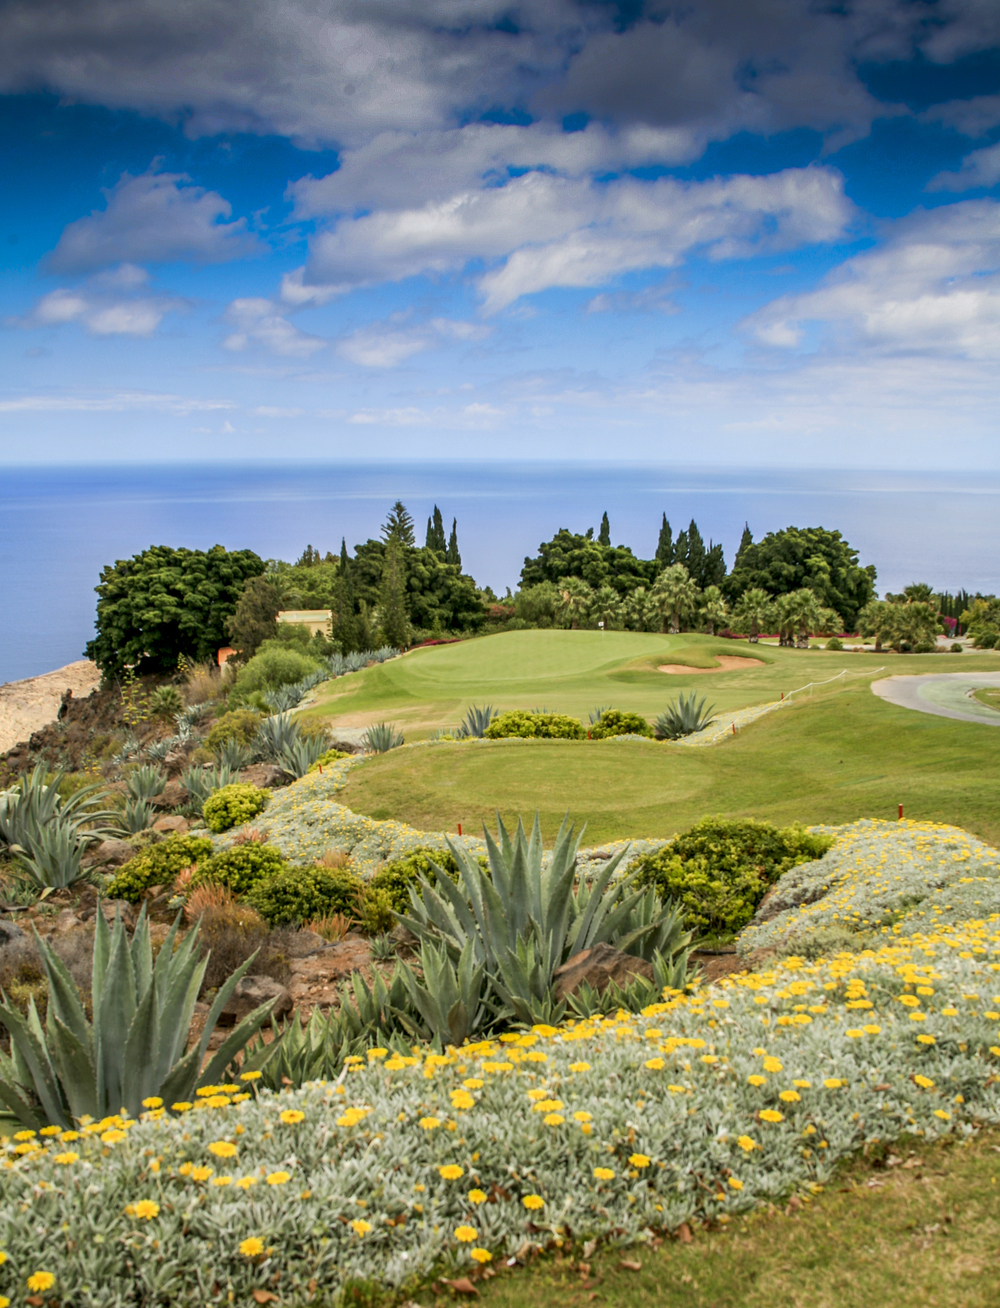 Tecina is a garden of golfing delights - David J Whyte © Linksland